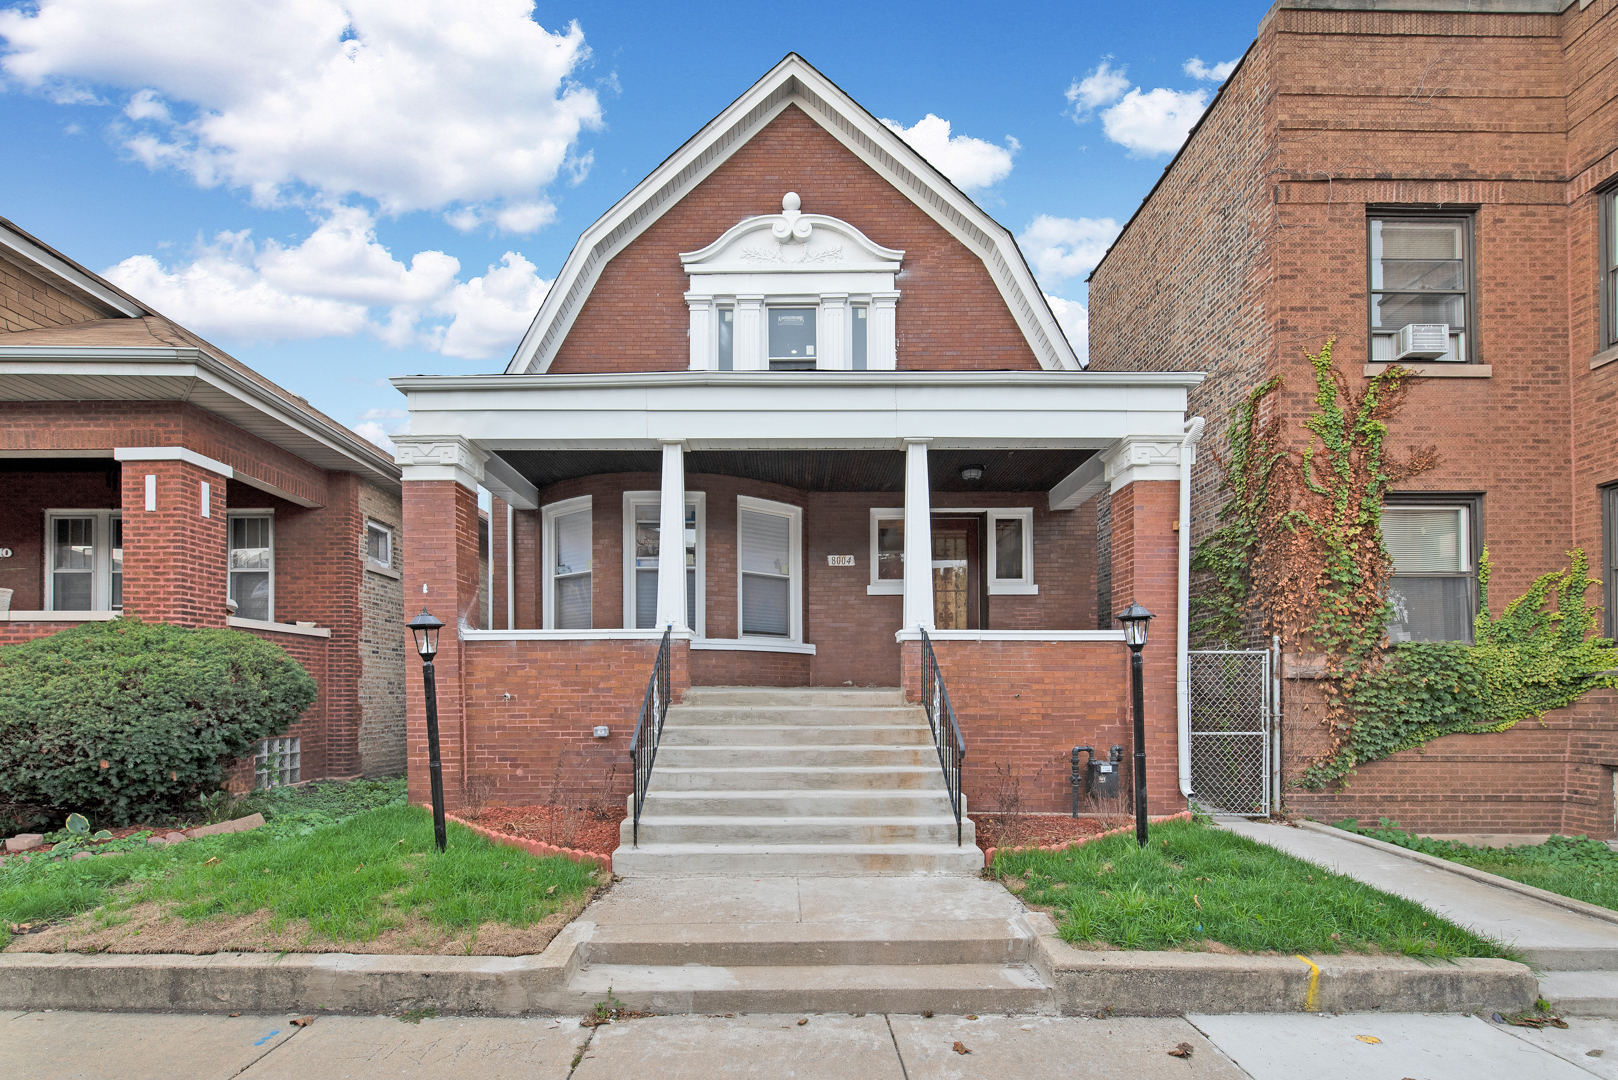 8004 SOUTH MORGAN STREET, CHICAGO, IL 60620